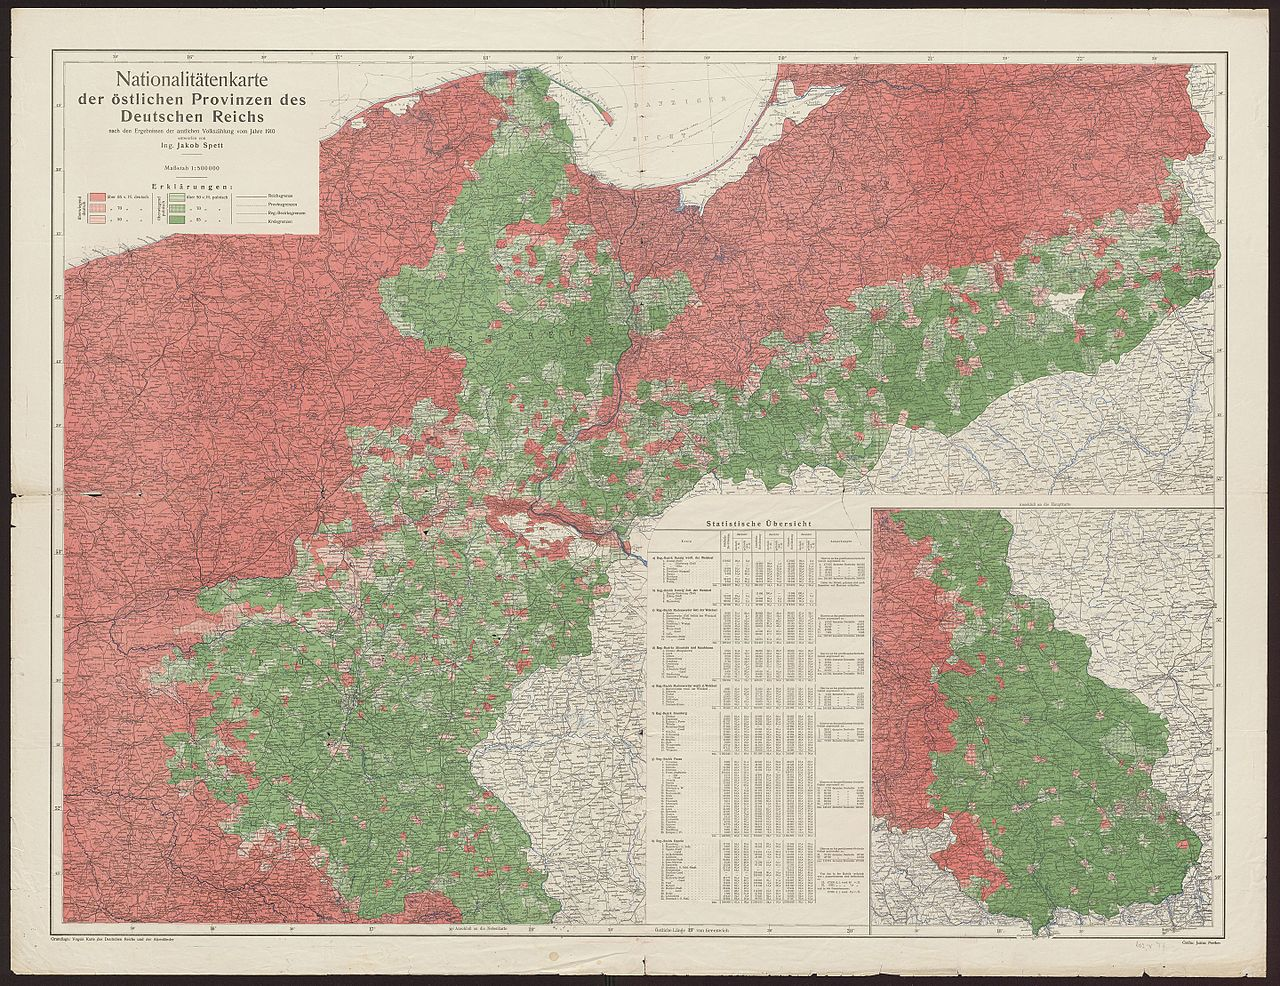 FileNational Map Of Eastern Provinces Of German Reich Based On - Census us 1910 map